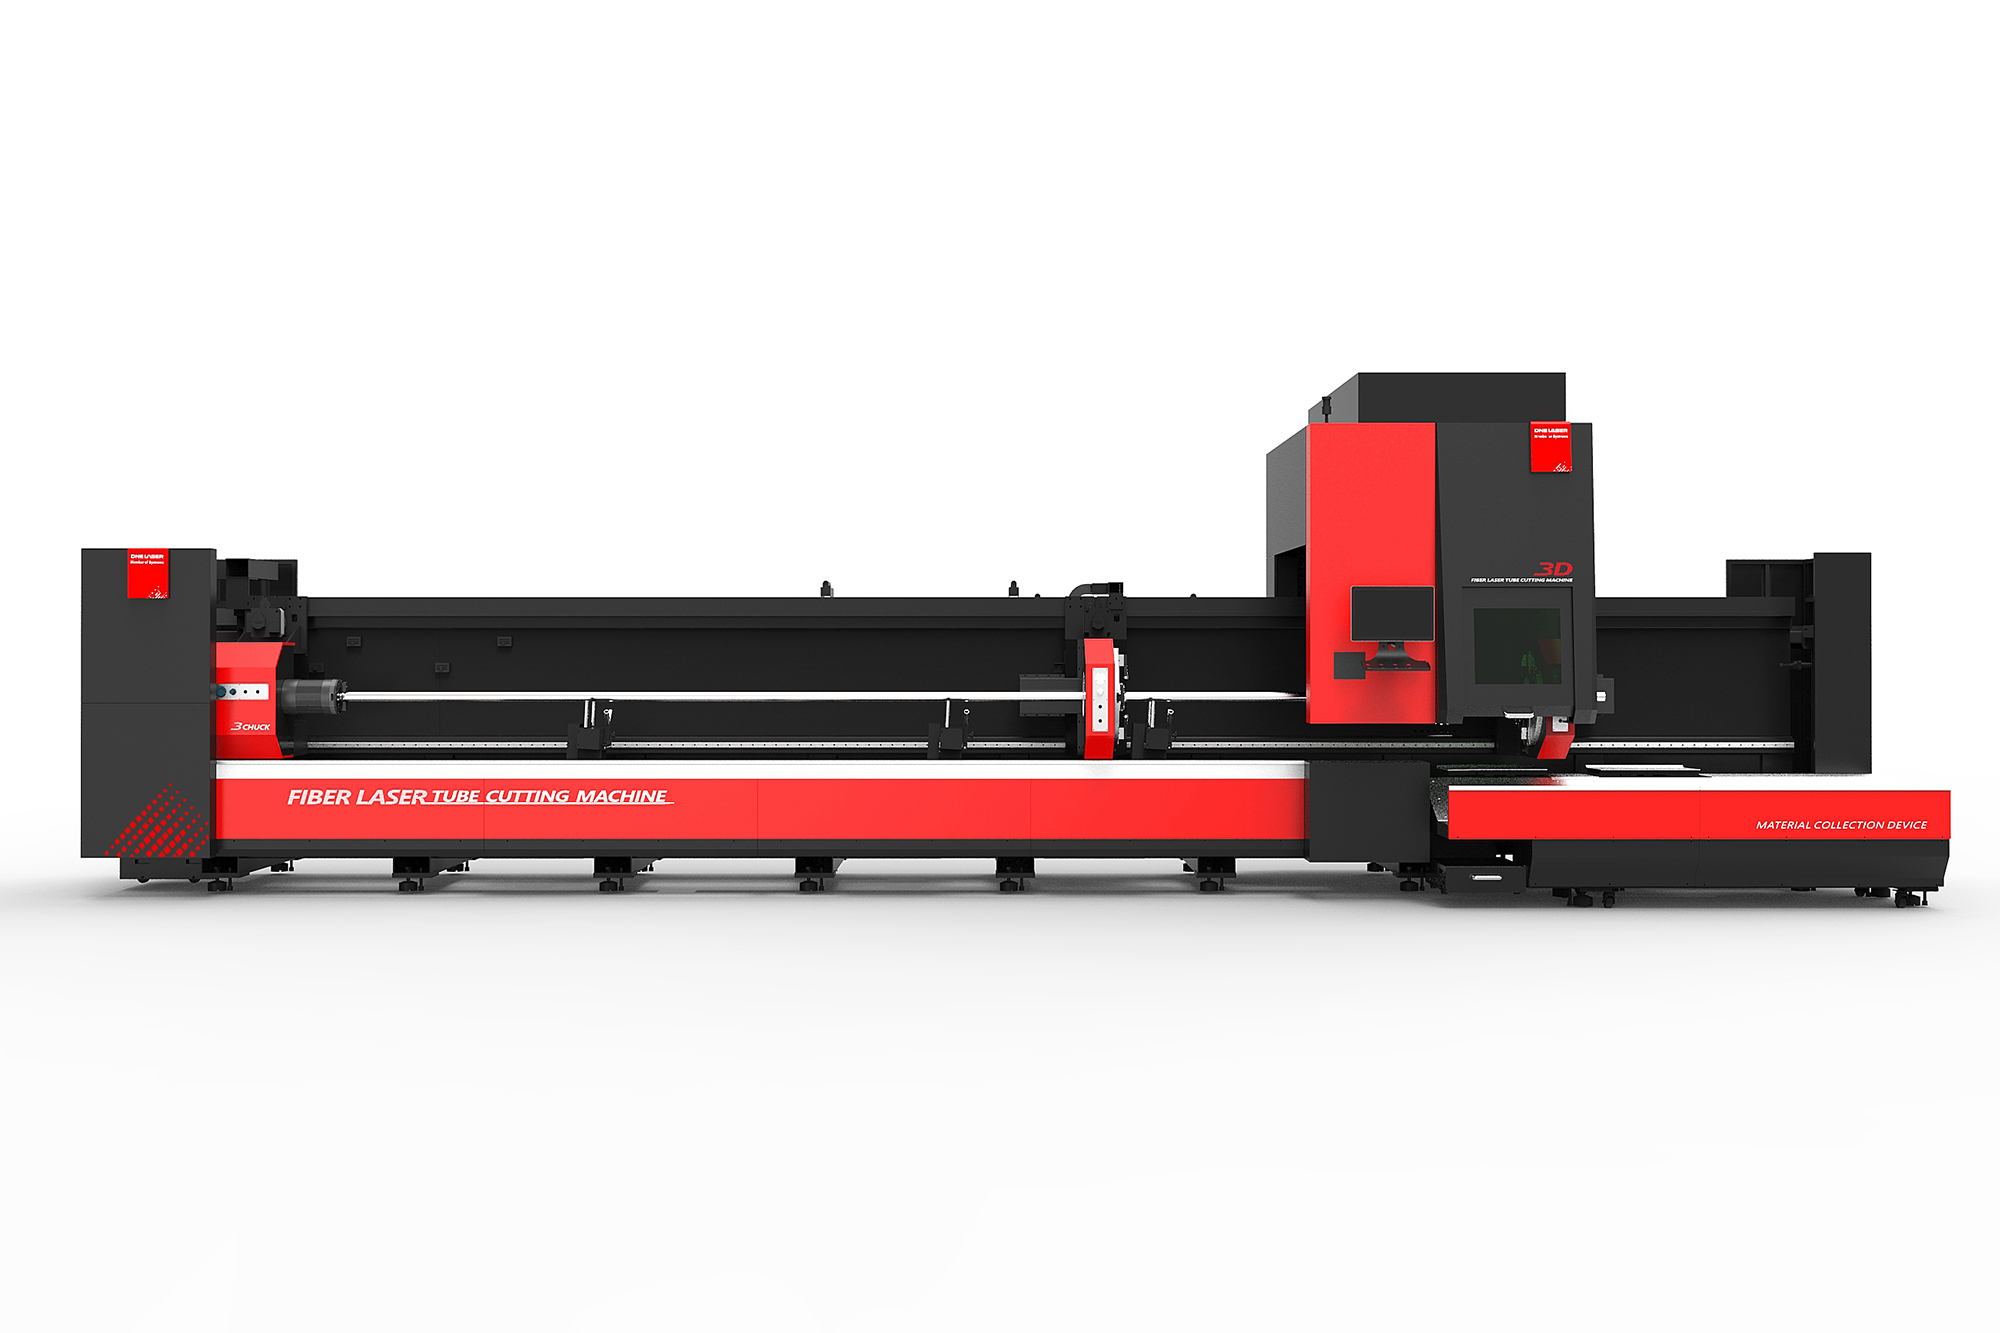 Fiber laser tube cutting machine is a product developed for the market of profile and tube cutting. It adopts the latest bus type CNC laser tube cutting system developed independentlyTo realize the control of pipe support device, chuck, etc. Can meet the carbon steel, stainless steel, aluminum and other materials such as round pipe, square pipe, U-groove, I-steel, shaped pipe profile cutting, opening, contour cutting, is a high degree of intelligent automation, high efficiency, cost-effective special pipe cutting equipment.